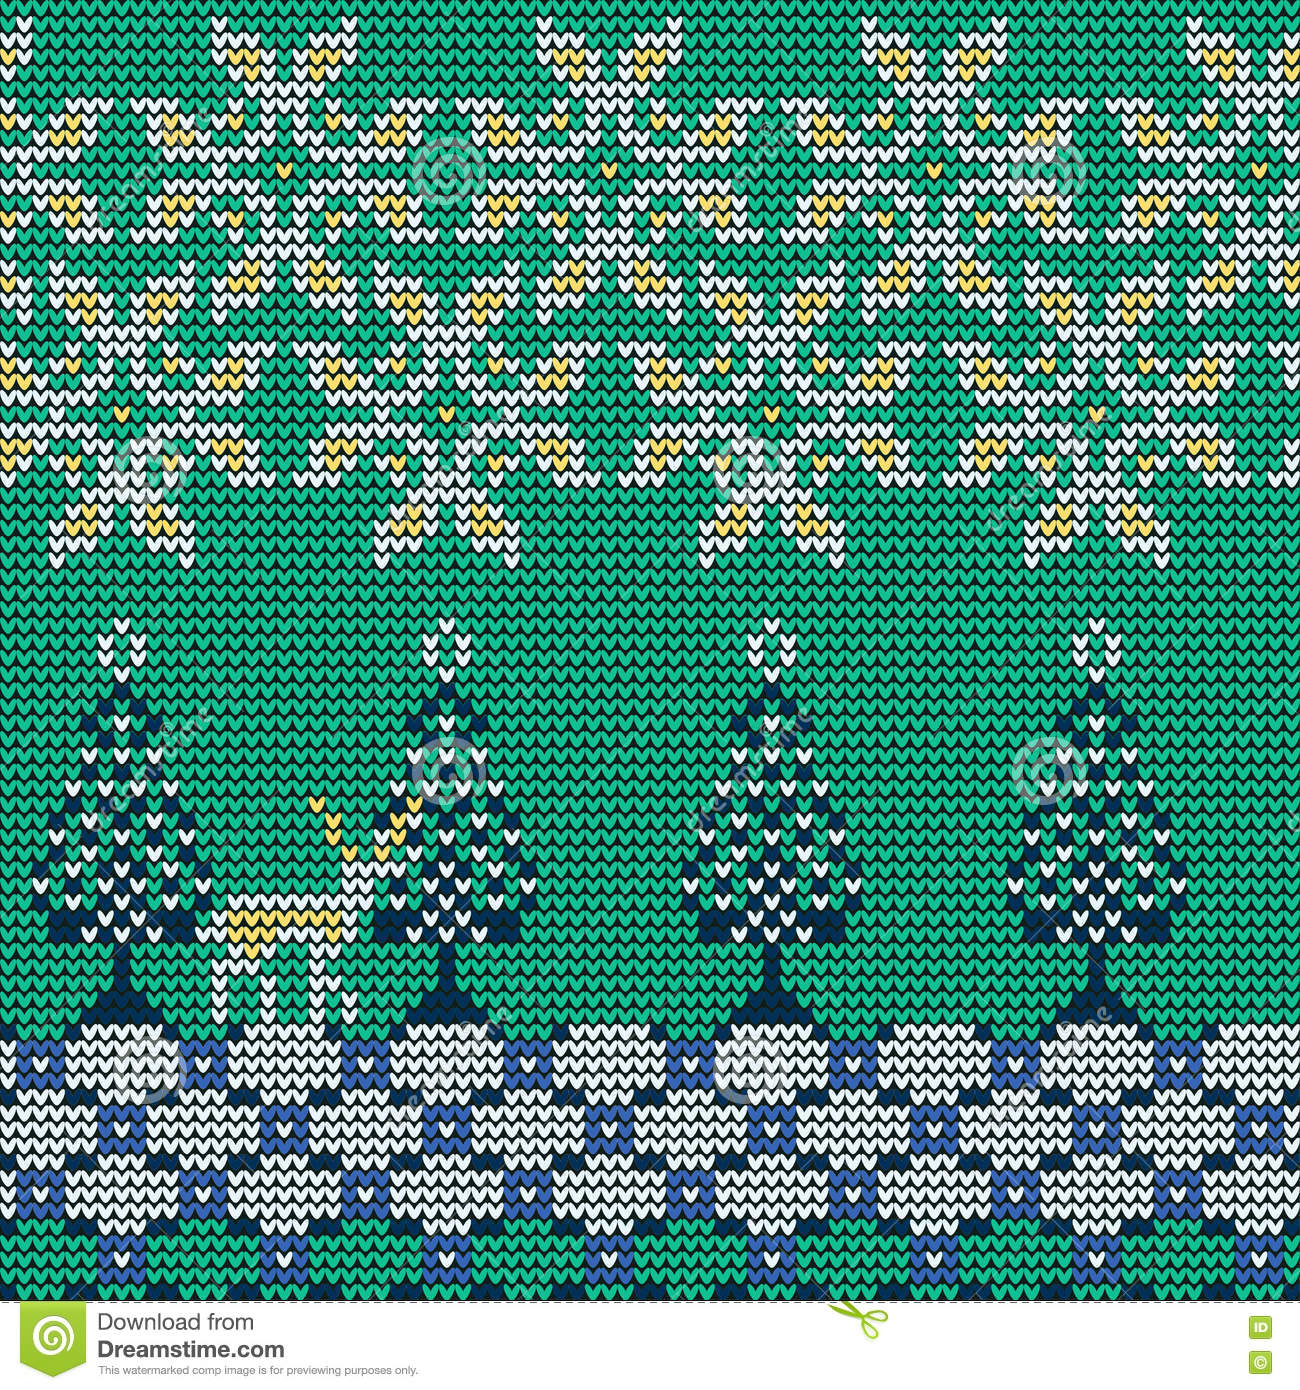 vector illustration of knitted sweater seamless pattern for design website background banner christmas ornament for wallpaper or textile - Christmas Sweater Wallpaper